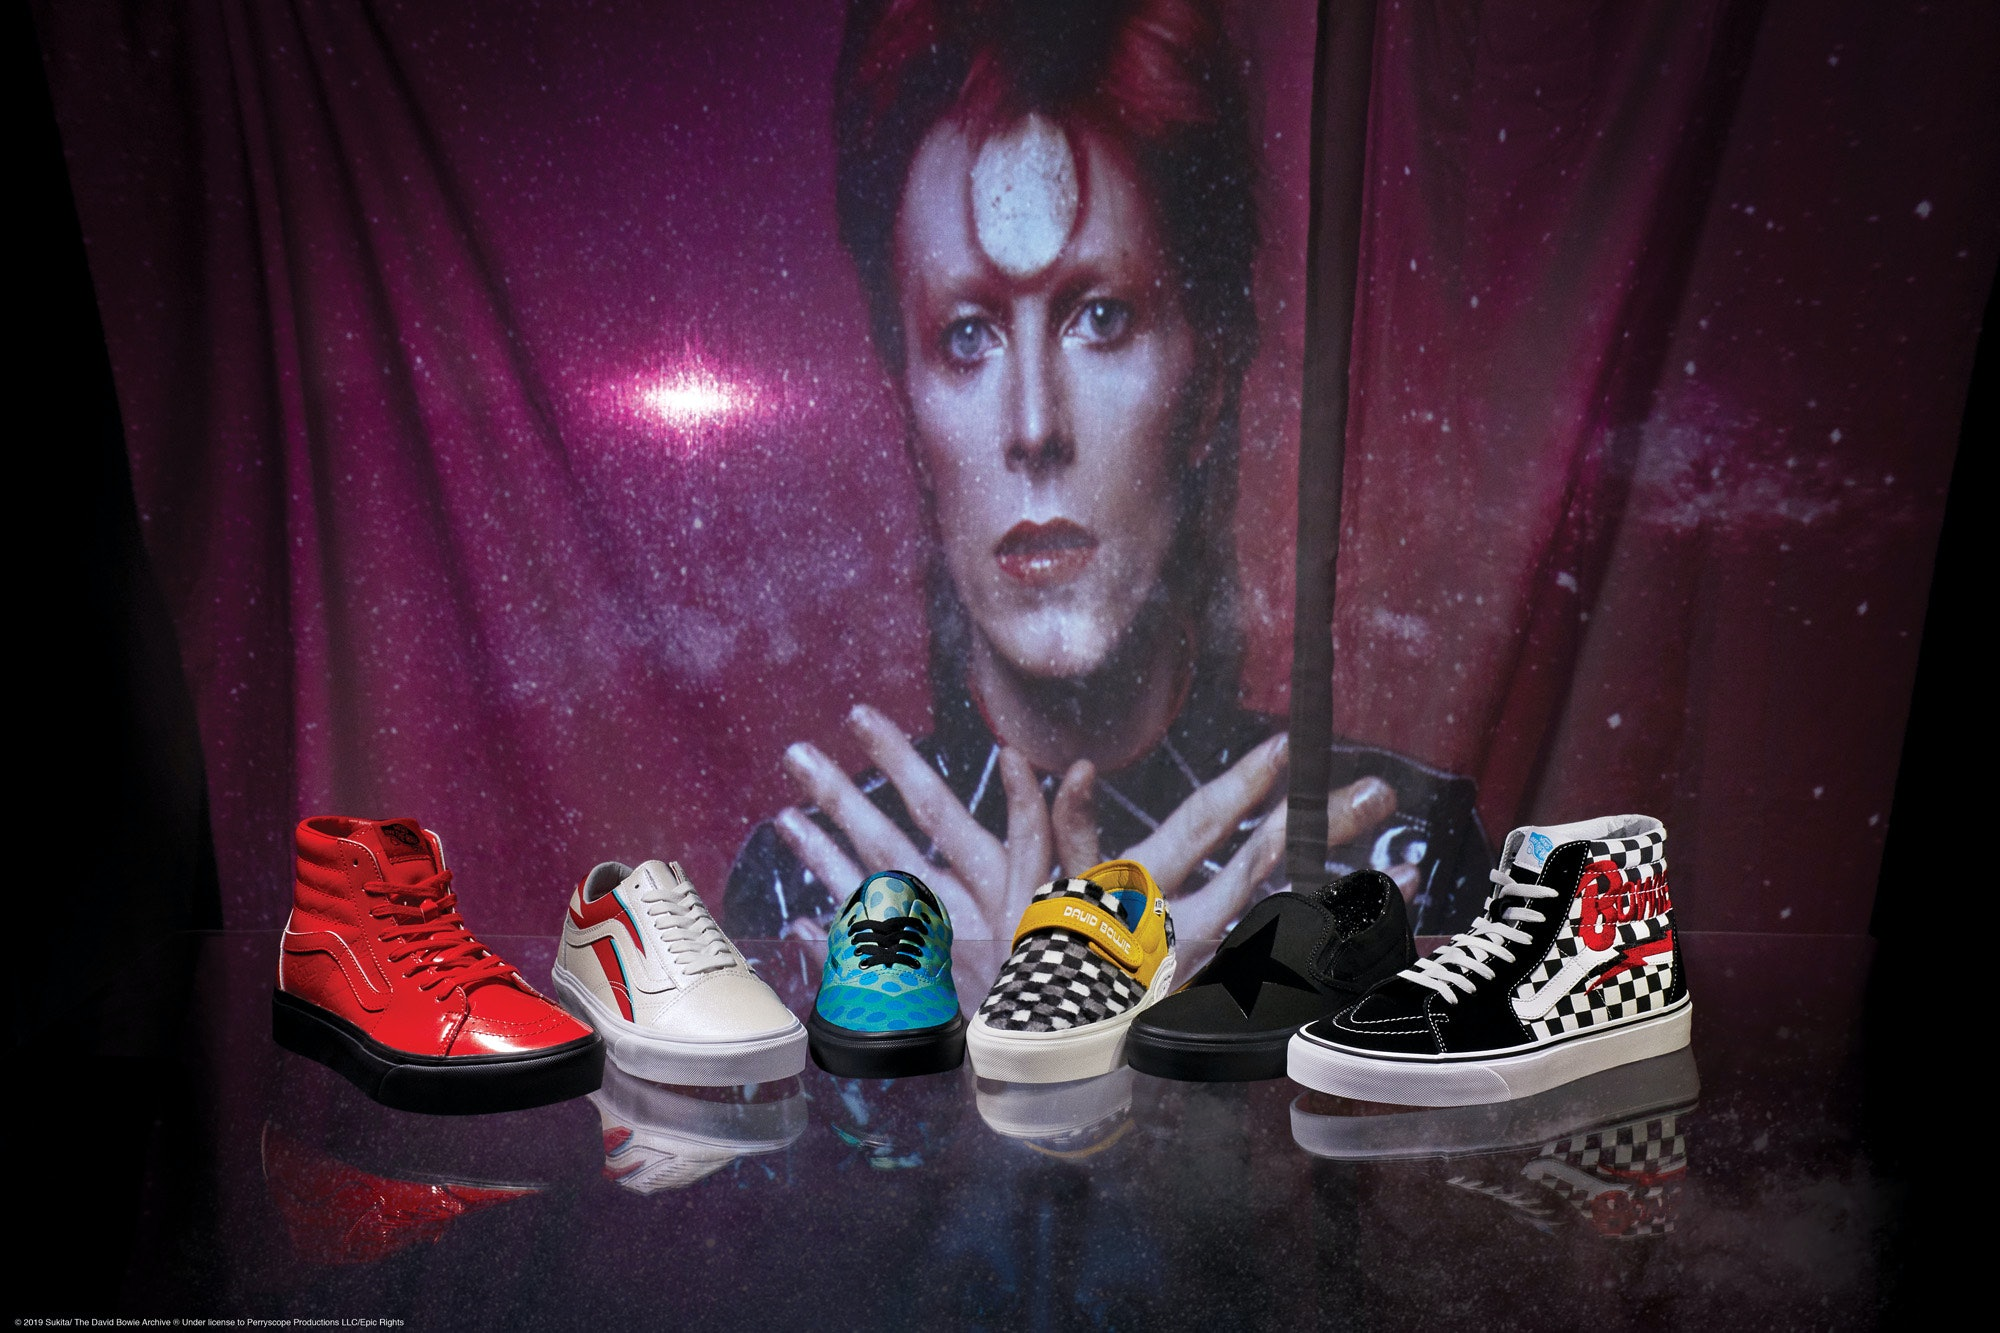 where to buy vans u2019 david bowie collection because